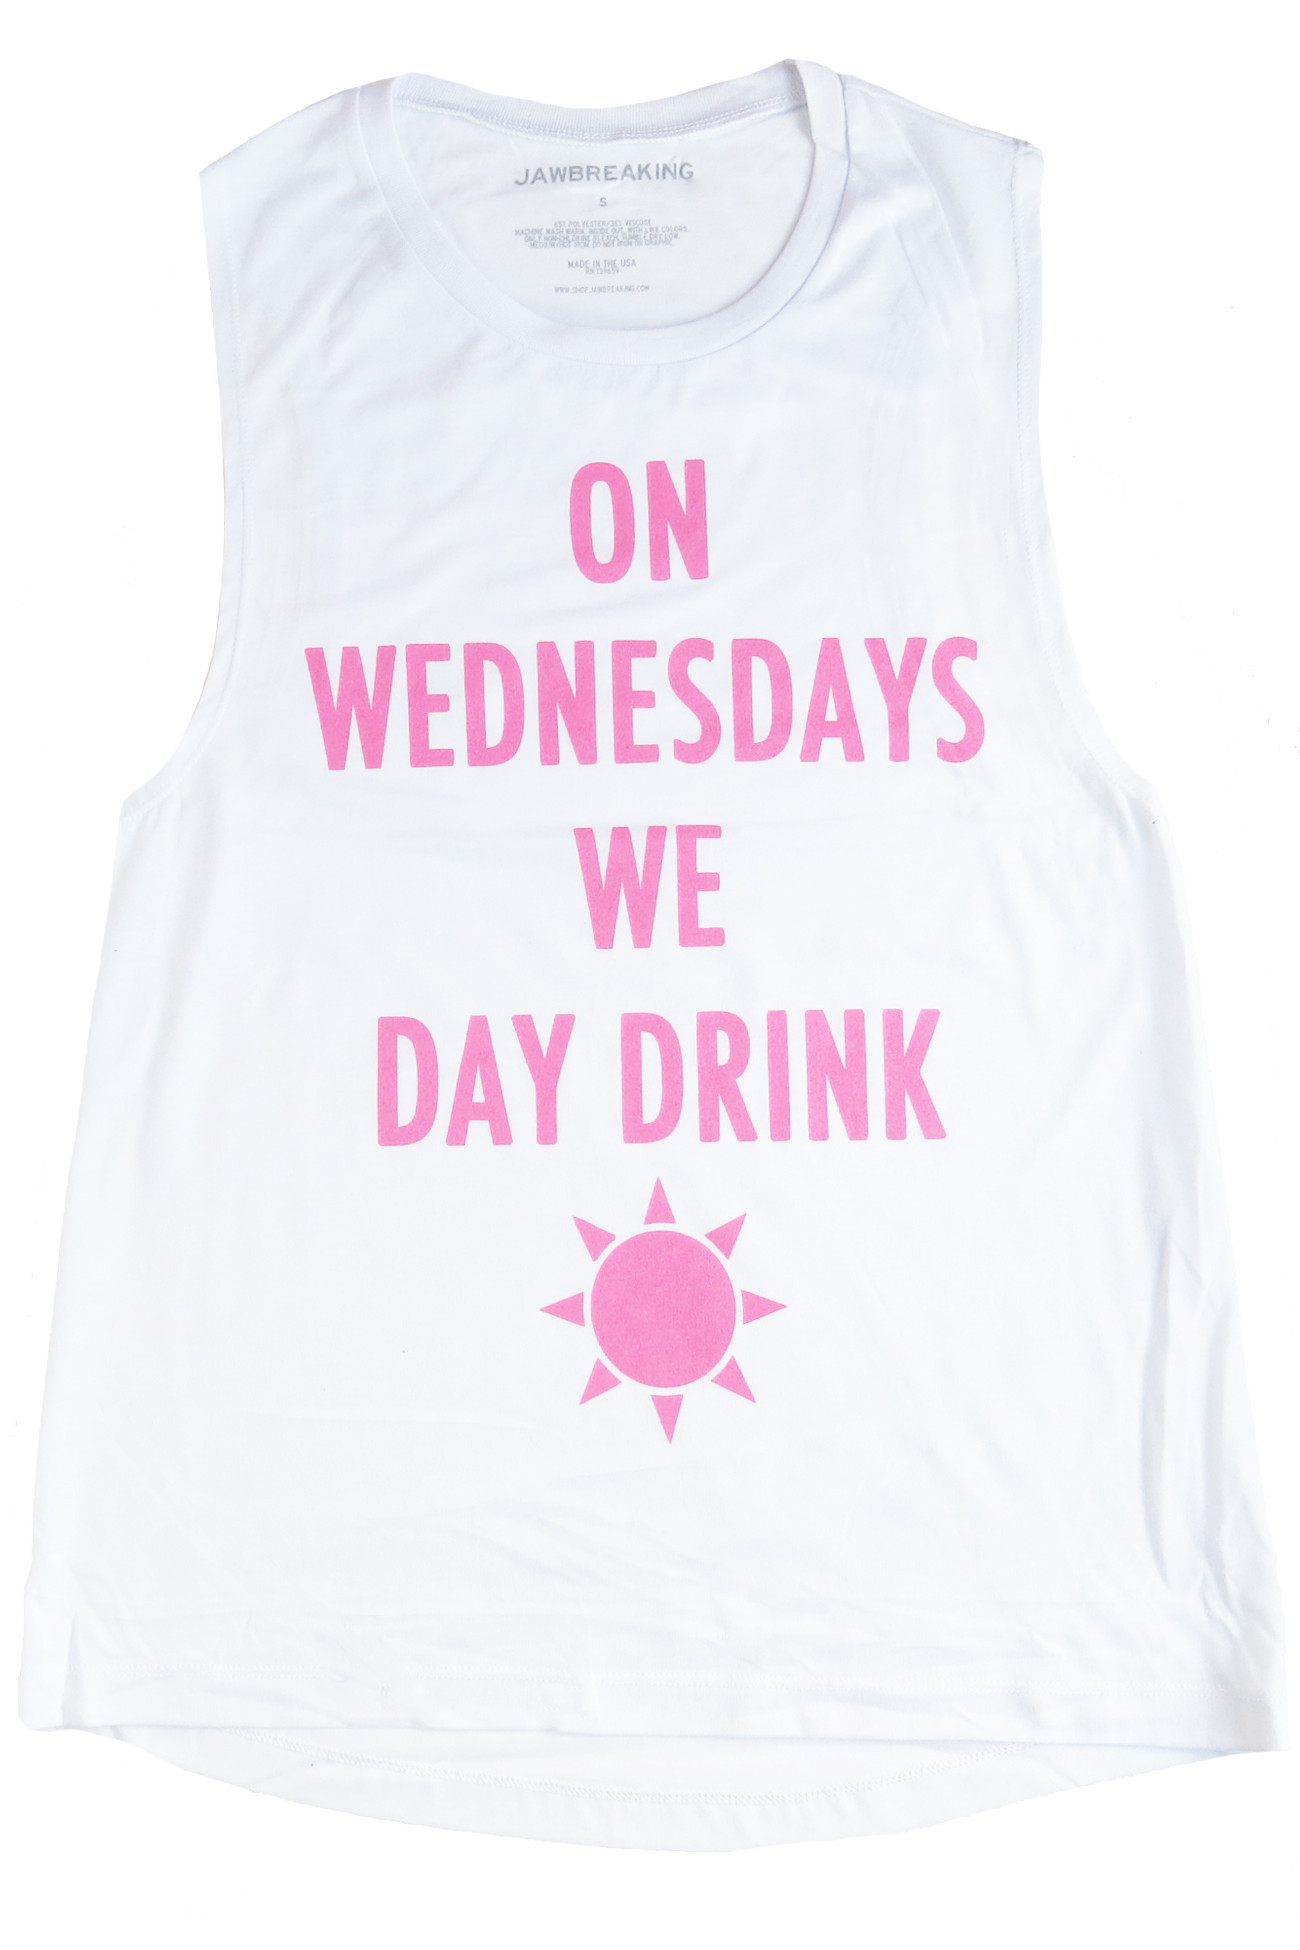 Day drink muscle tank – jawbreaking